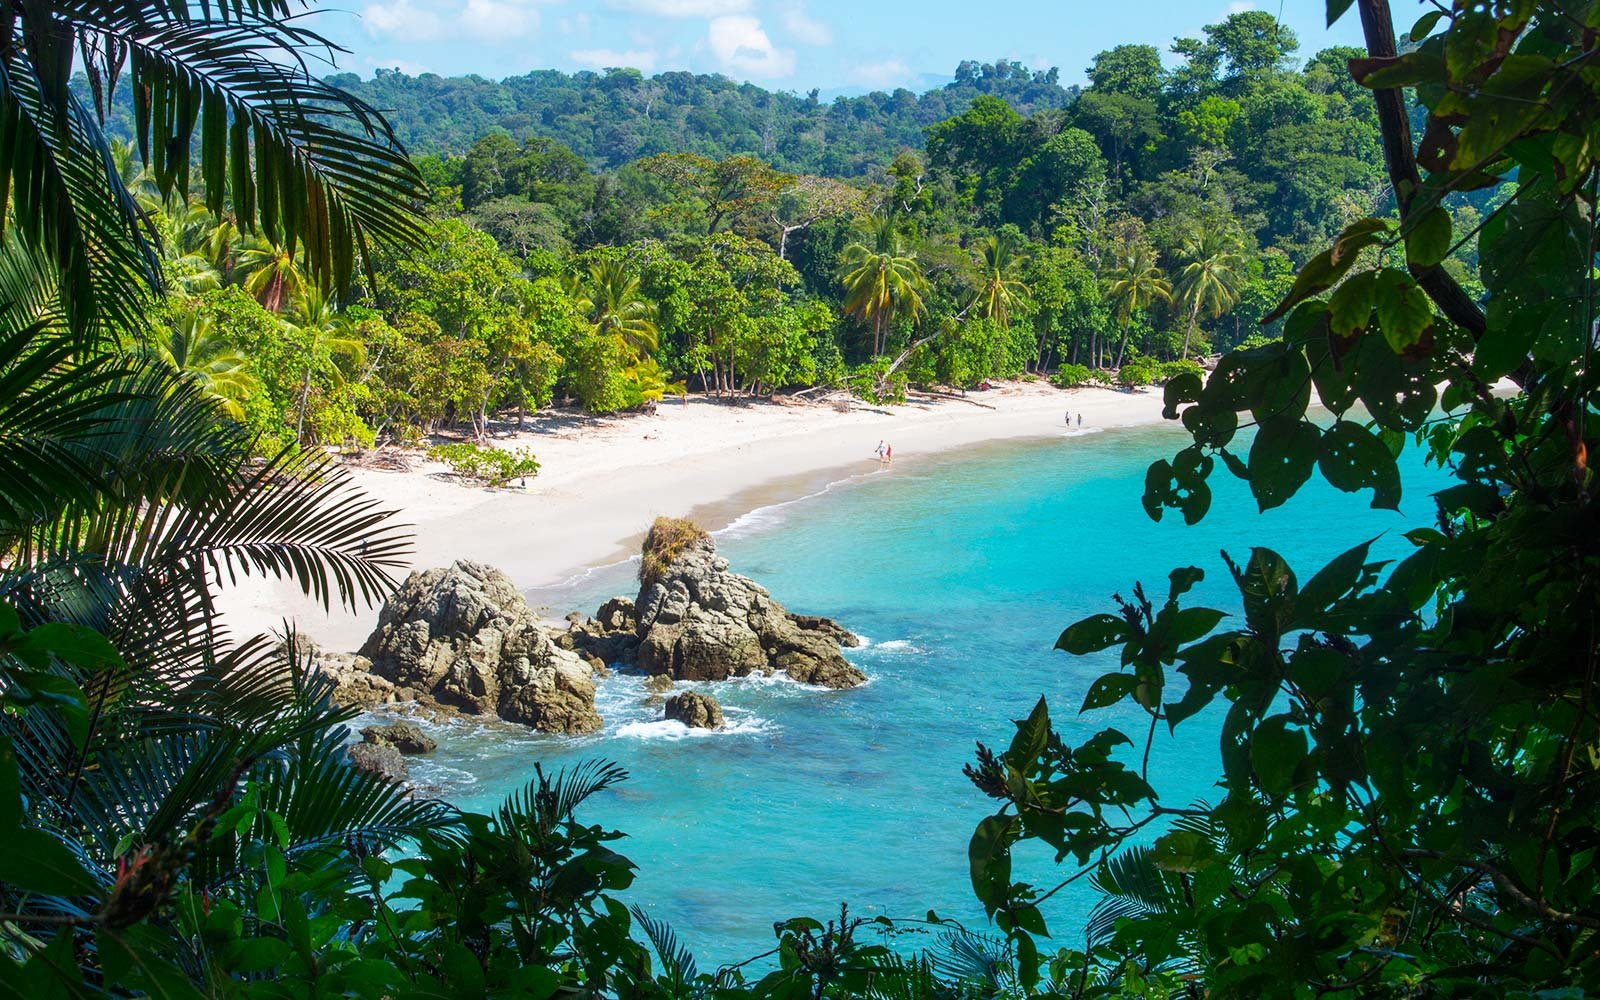 Costa Rica Real Estate Jaco Mail: Flights To Costa Rica Are On Sale For $205 Round-trip